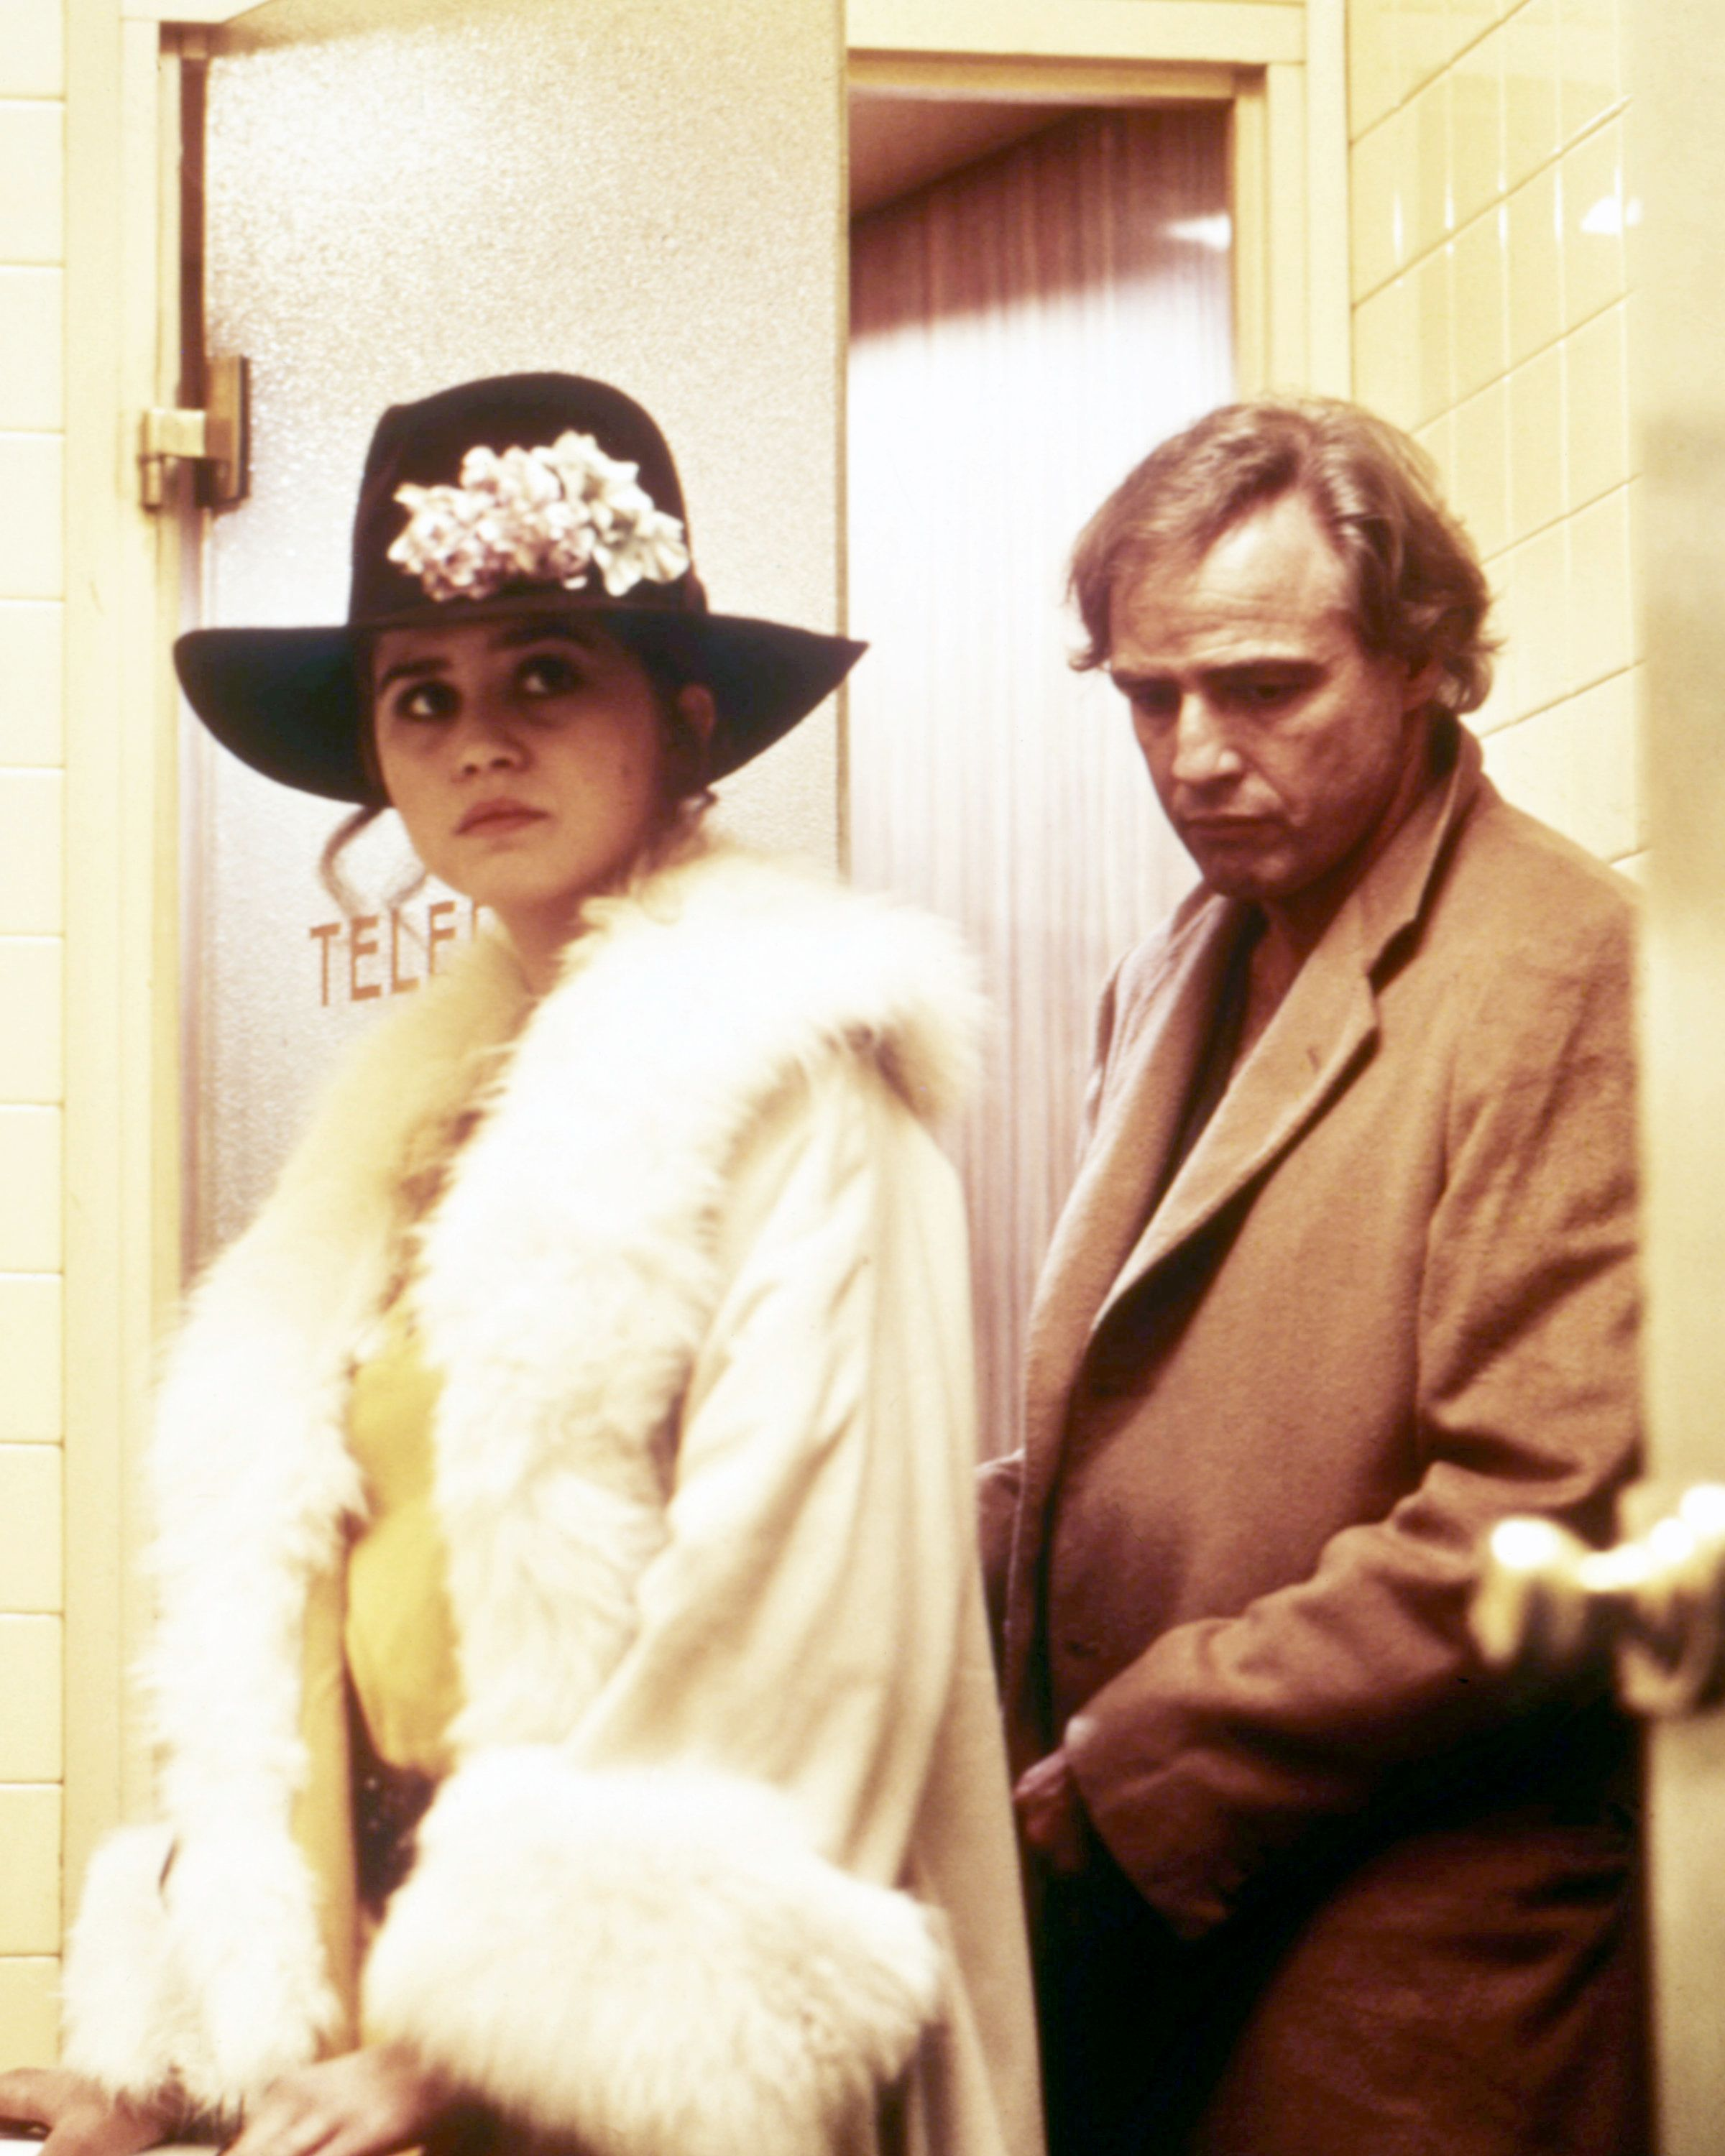 American actor Marlon Brando (1924 - 2004), as Paul, and French actress Maria Schneider (1952 - 2011) as Jeanne, in 'Last Tango In Paris', directed by Bernardo Bertolucci, 1972. (Photo by Silver Screen Collection/Getty Images)